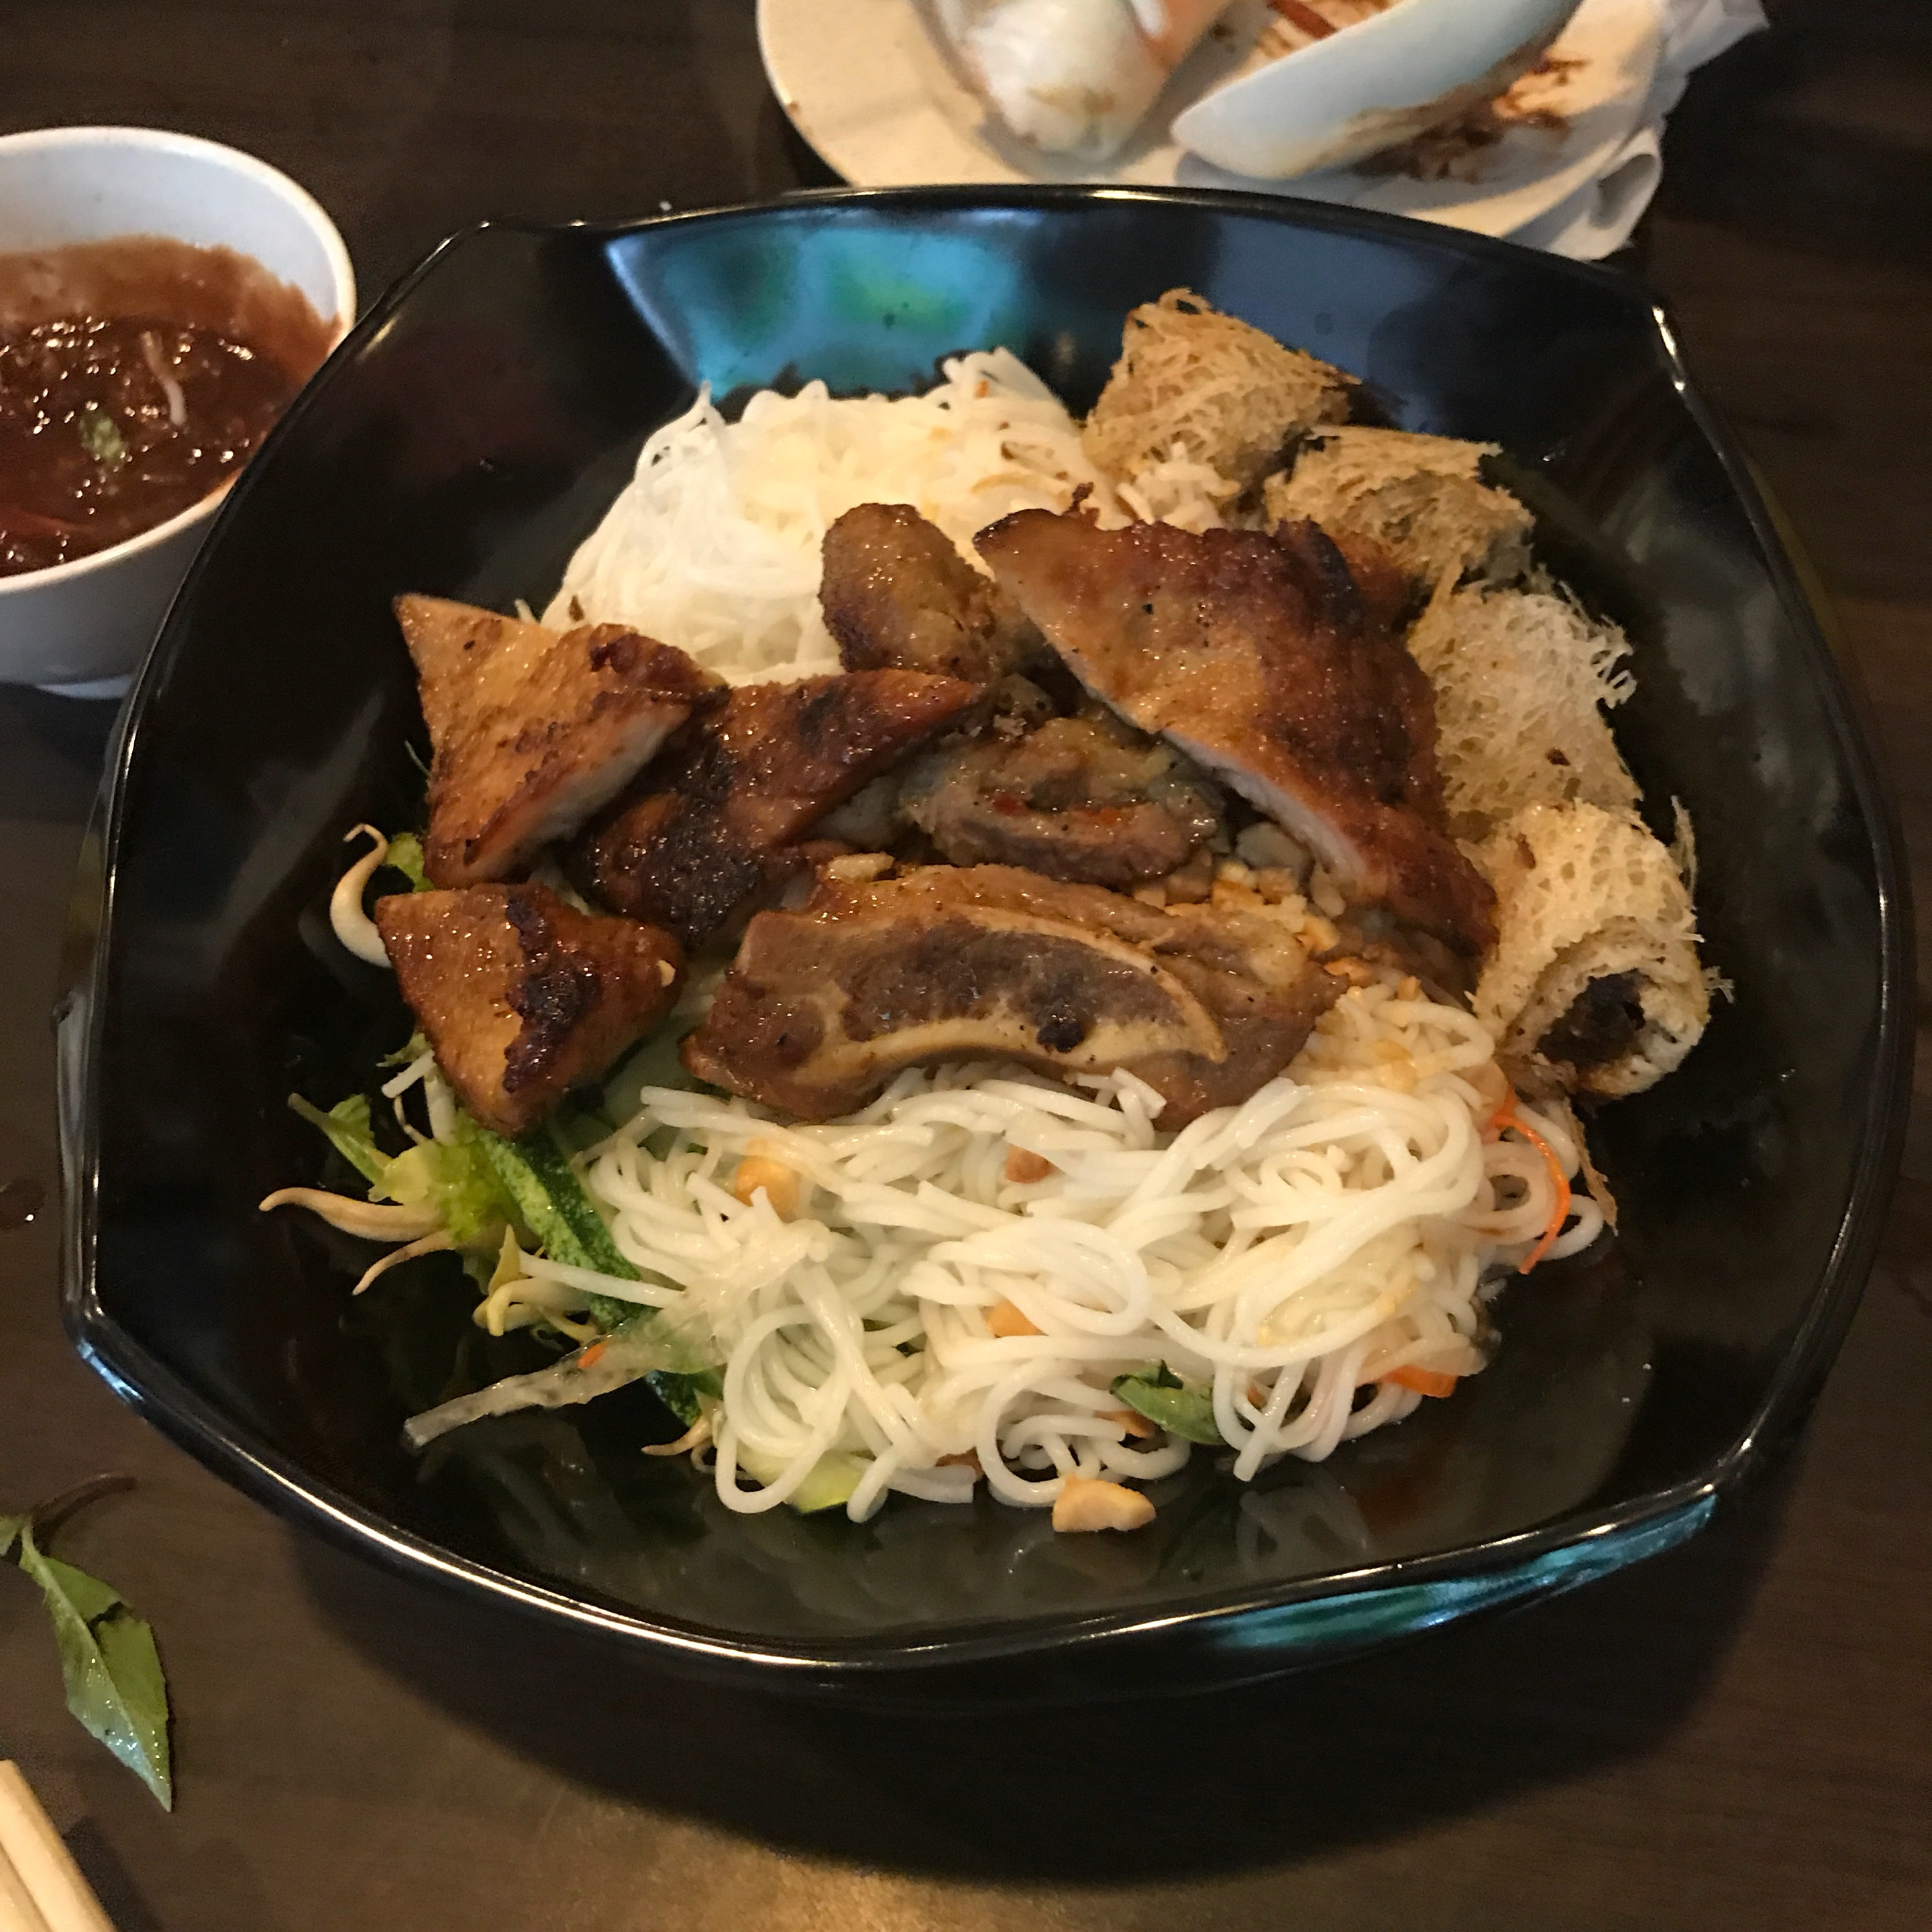 Rice Noodles With Grilled Pork And Fried Spring Rolls ($8.50)